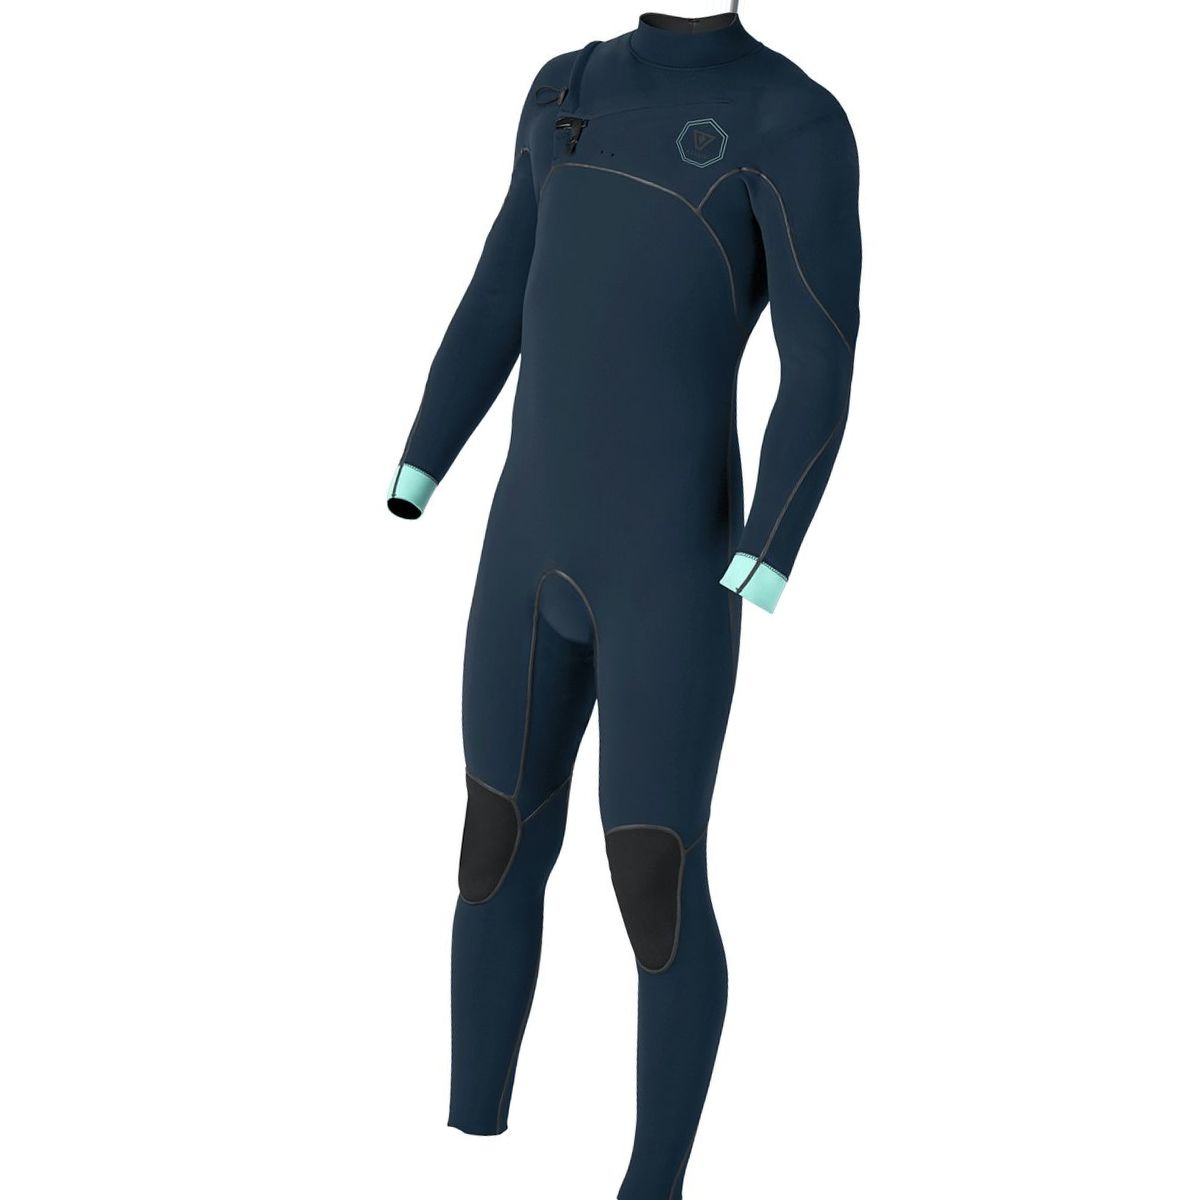 Vissla North Seas 3/2 Long-Sleeve Chest-Zip Full Wetsuit - Men's